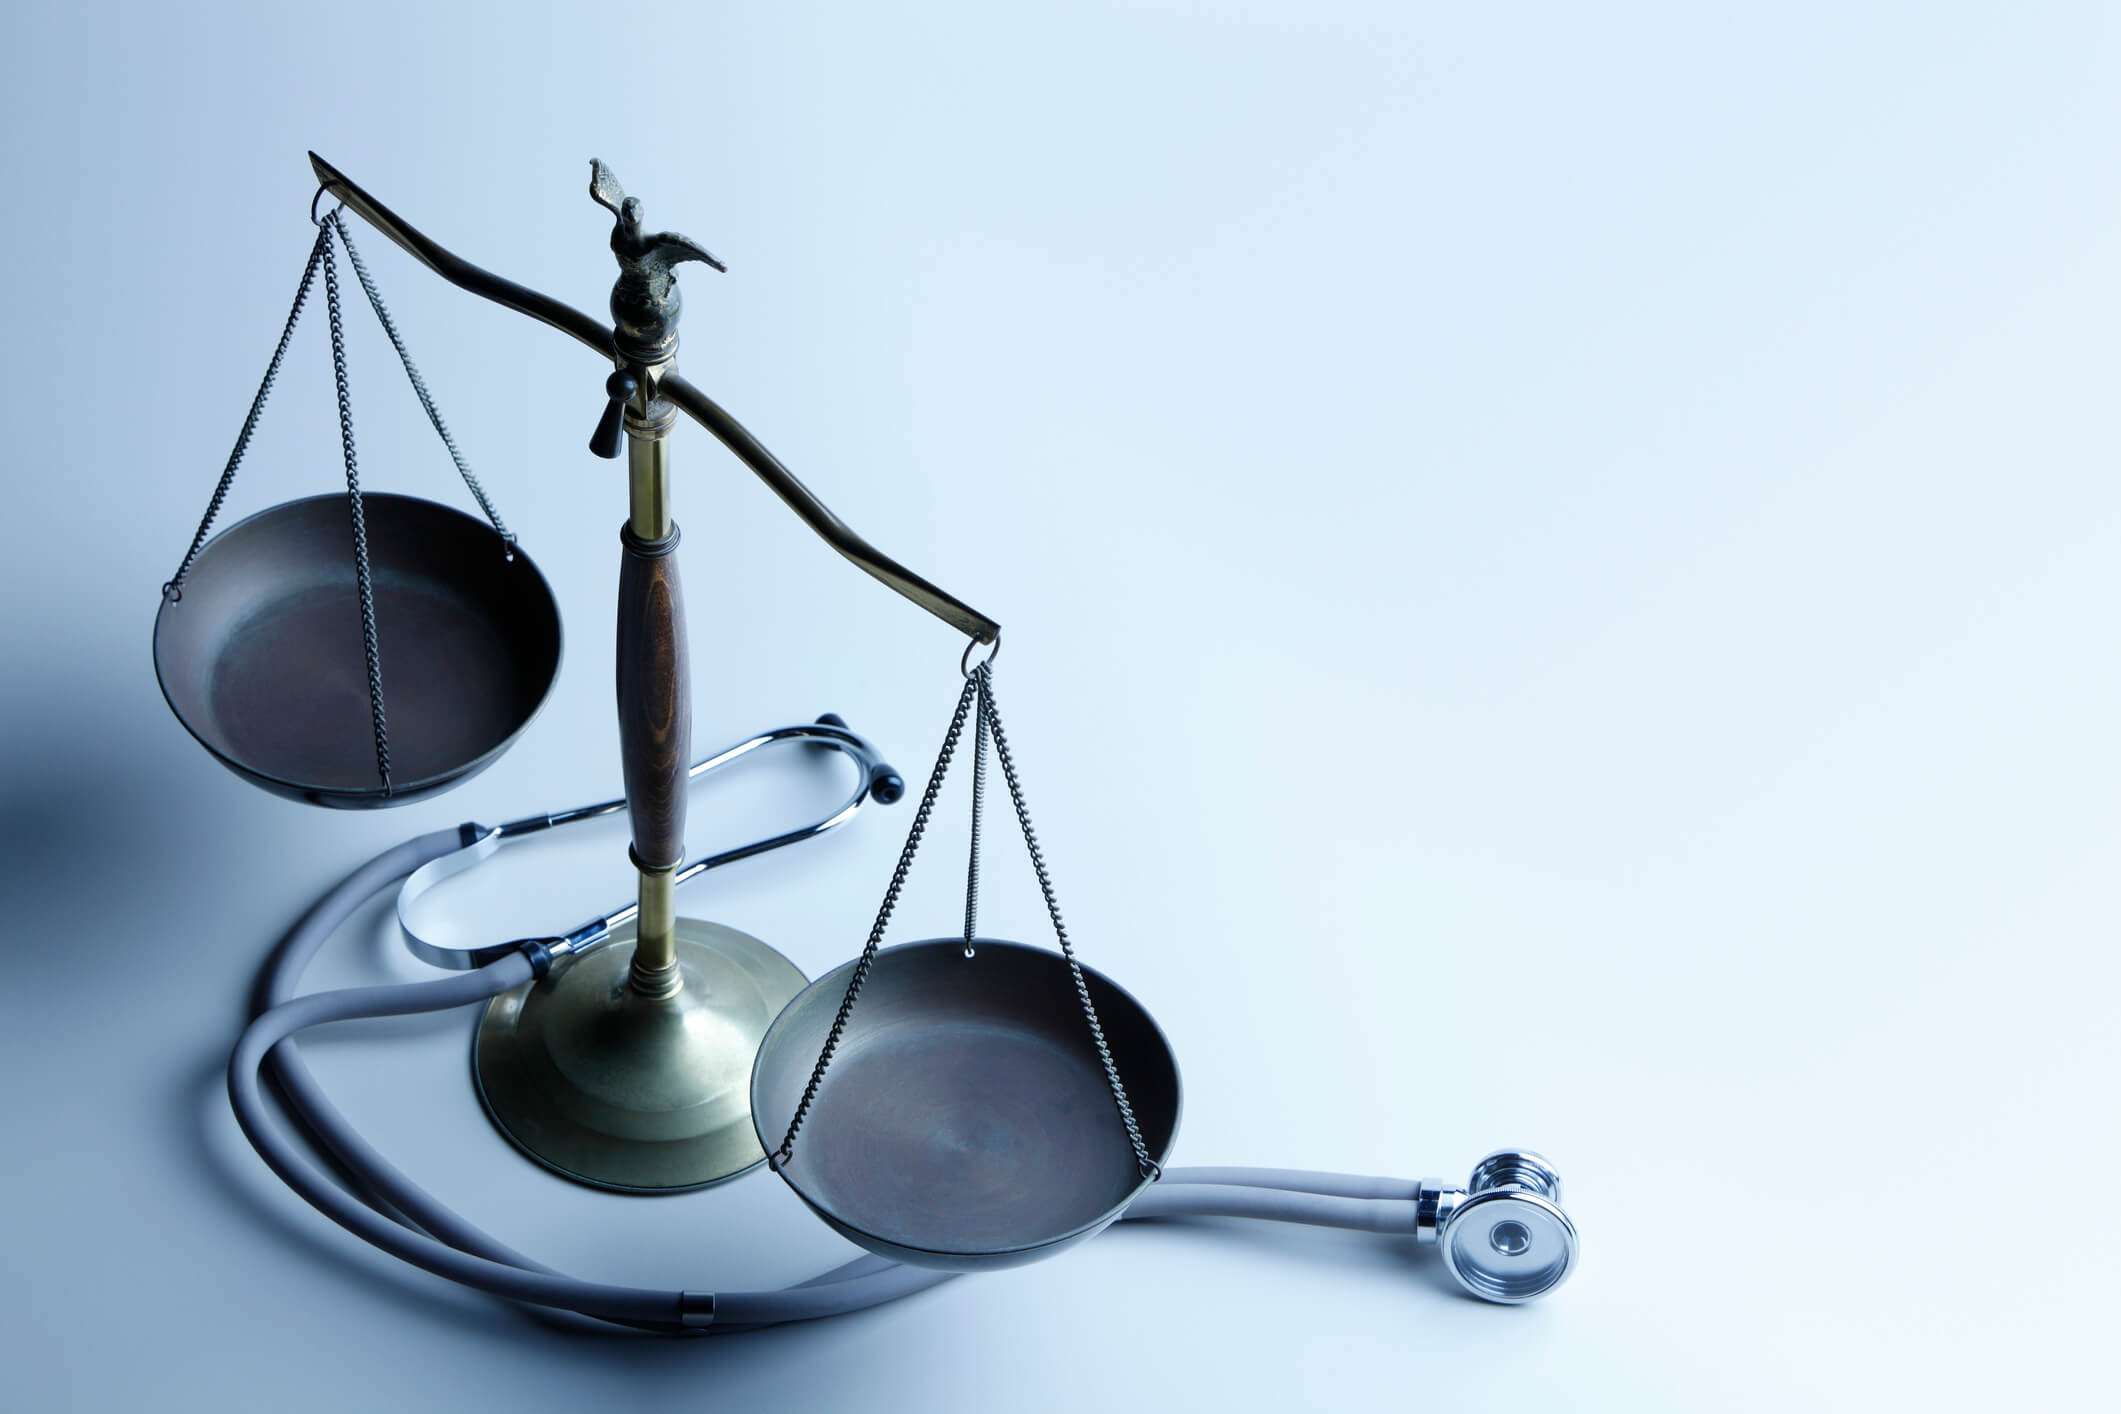 A stethoscope and a scale, signifying medical malpractice cases.